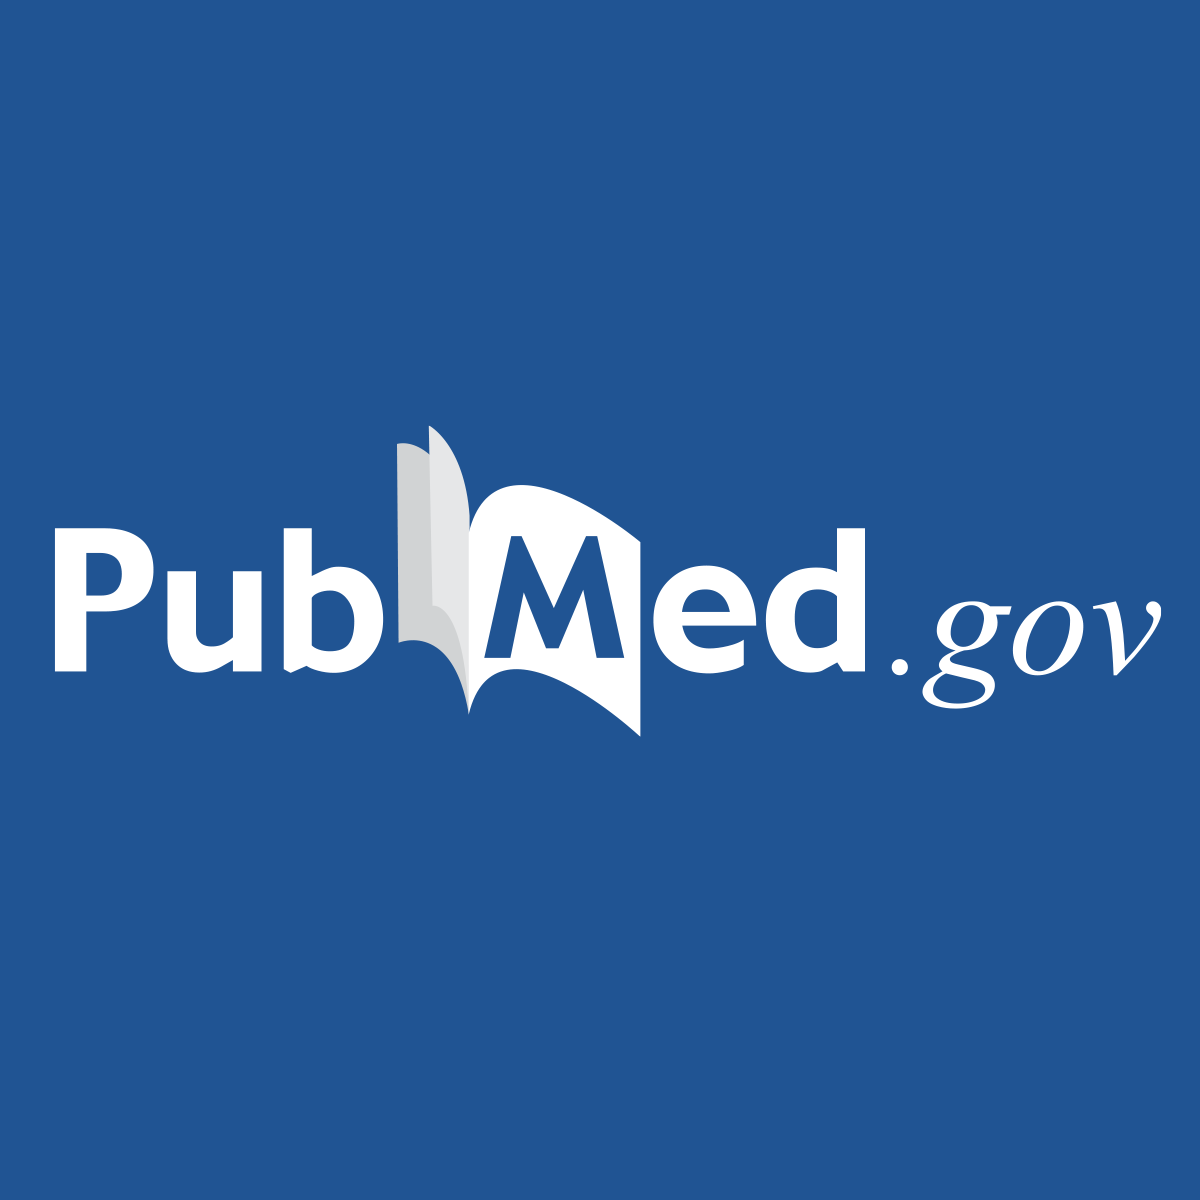 Effectiveness and Adherence to Treatment With Perindopril/Indapamide/Amlodipine Single-Pill Combination in a Greek Population With Hypertension